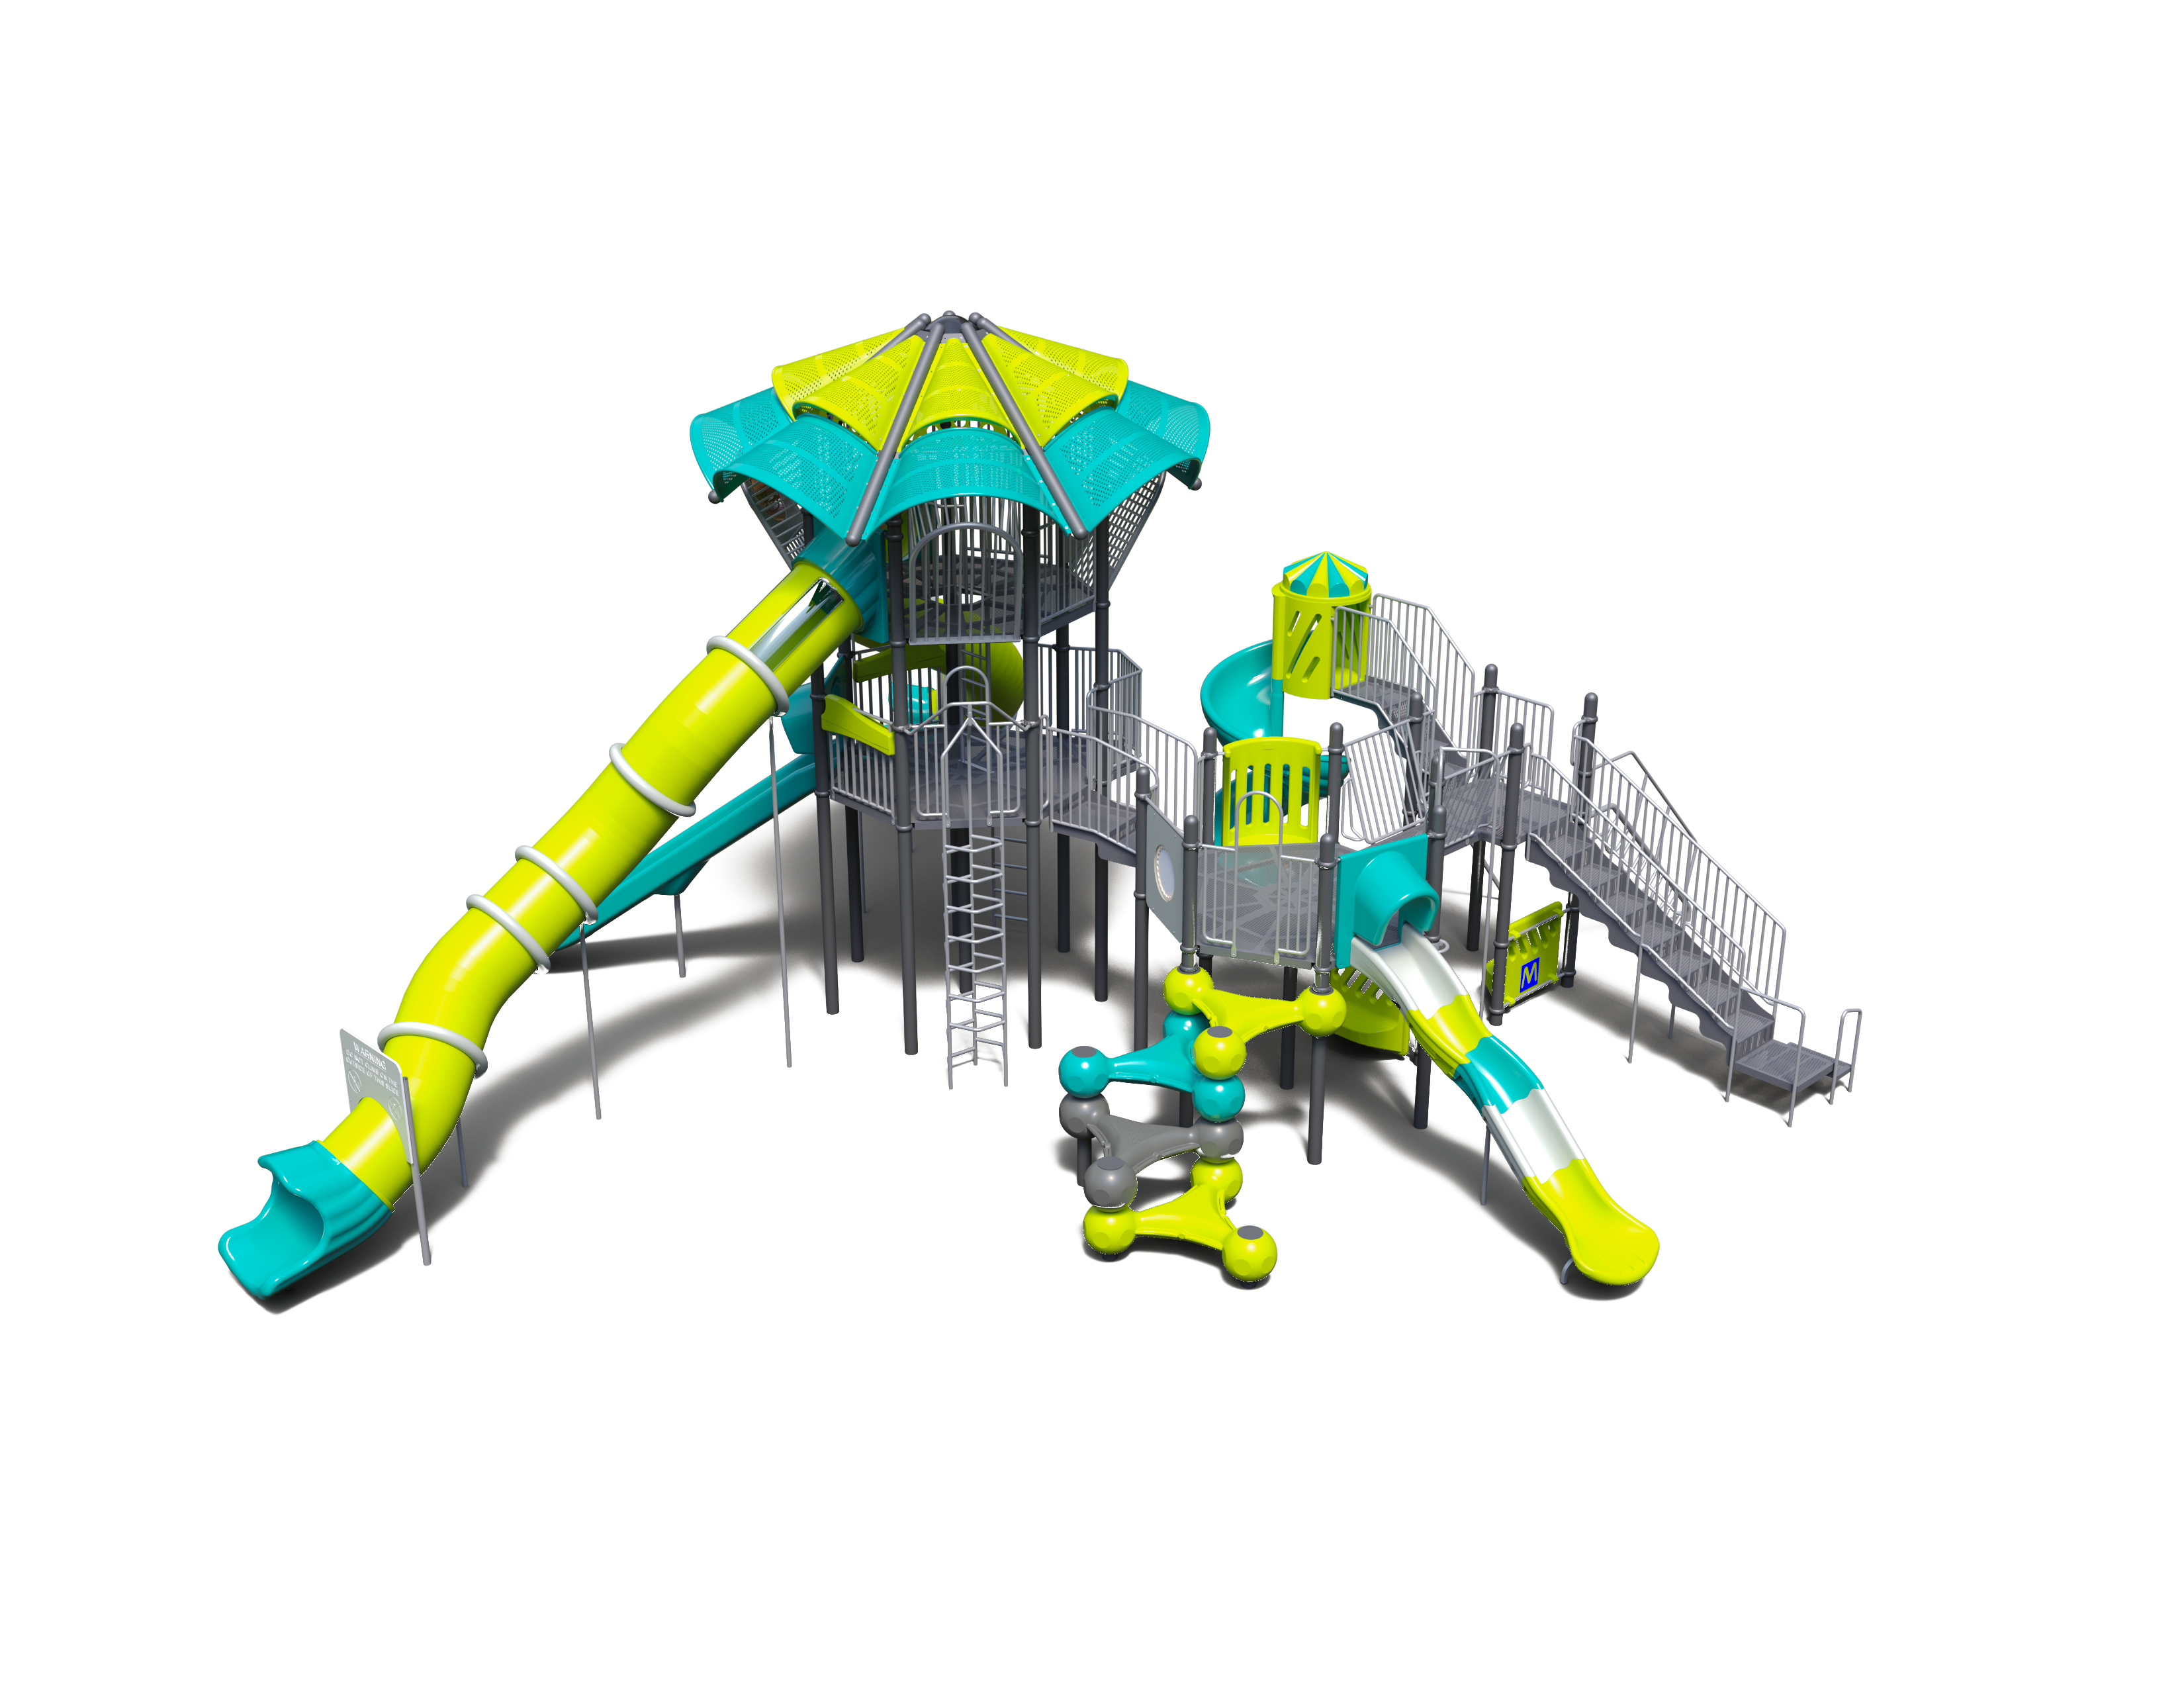 Mega Tower Structure (714S617)